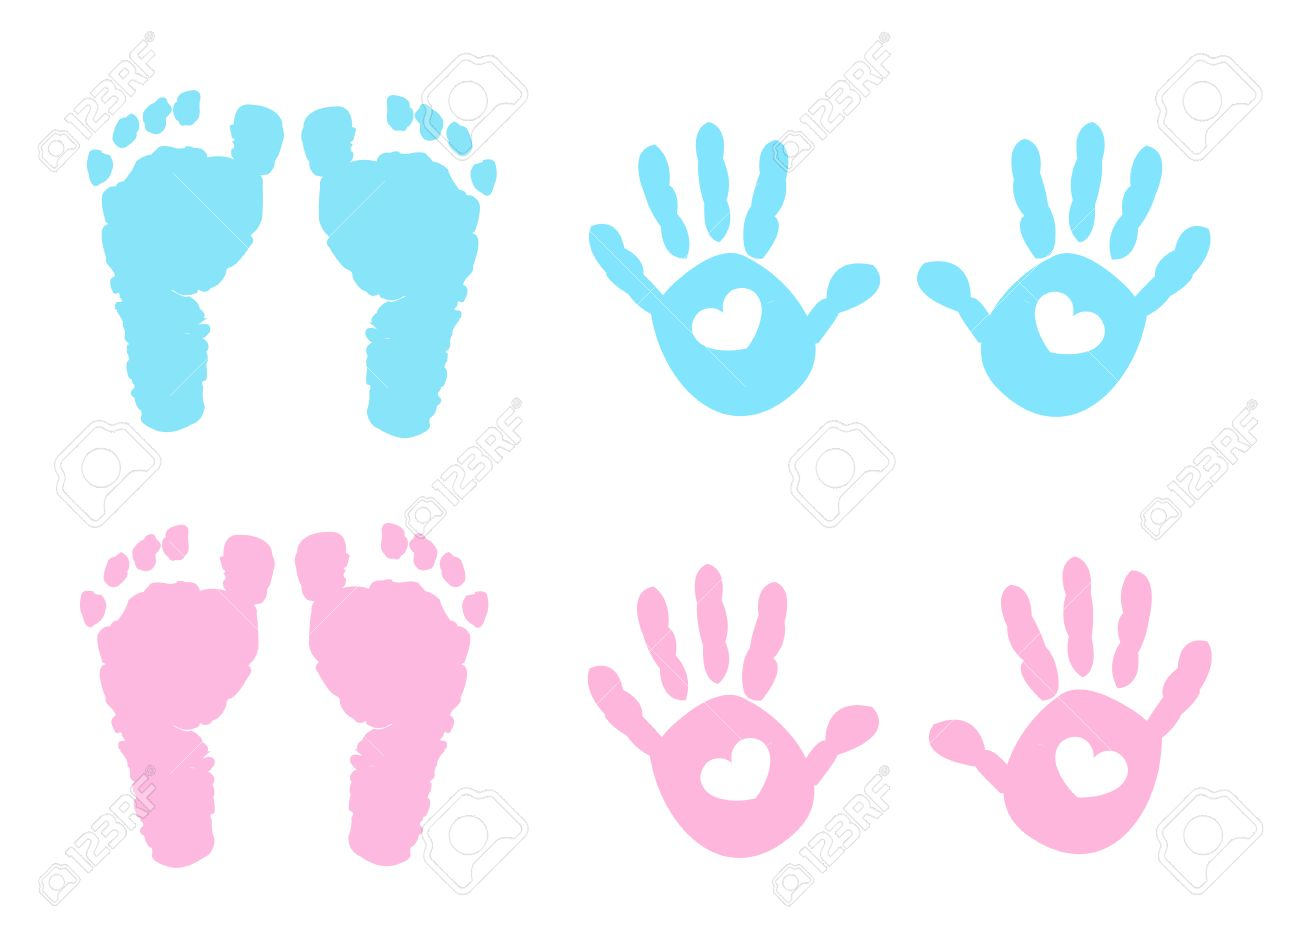 Baby hands and feet clipart 1 » Clipart Station.